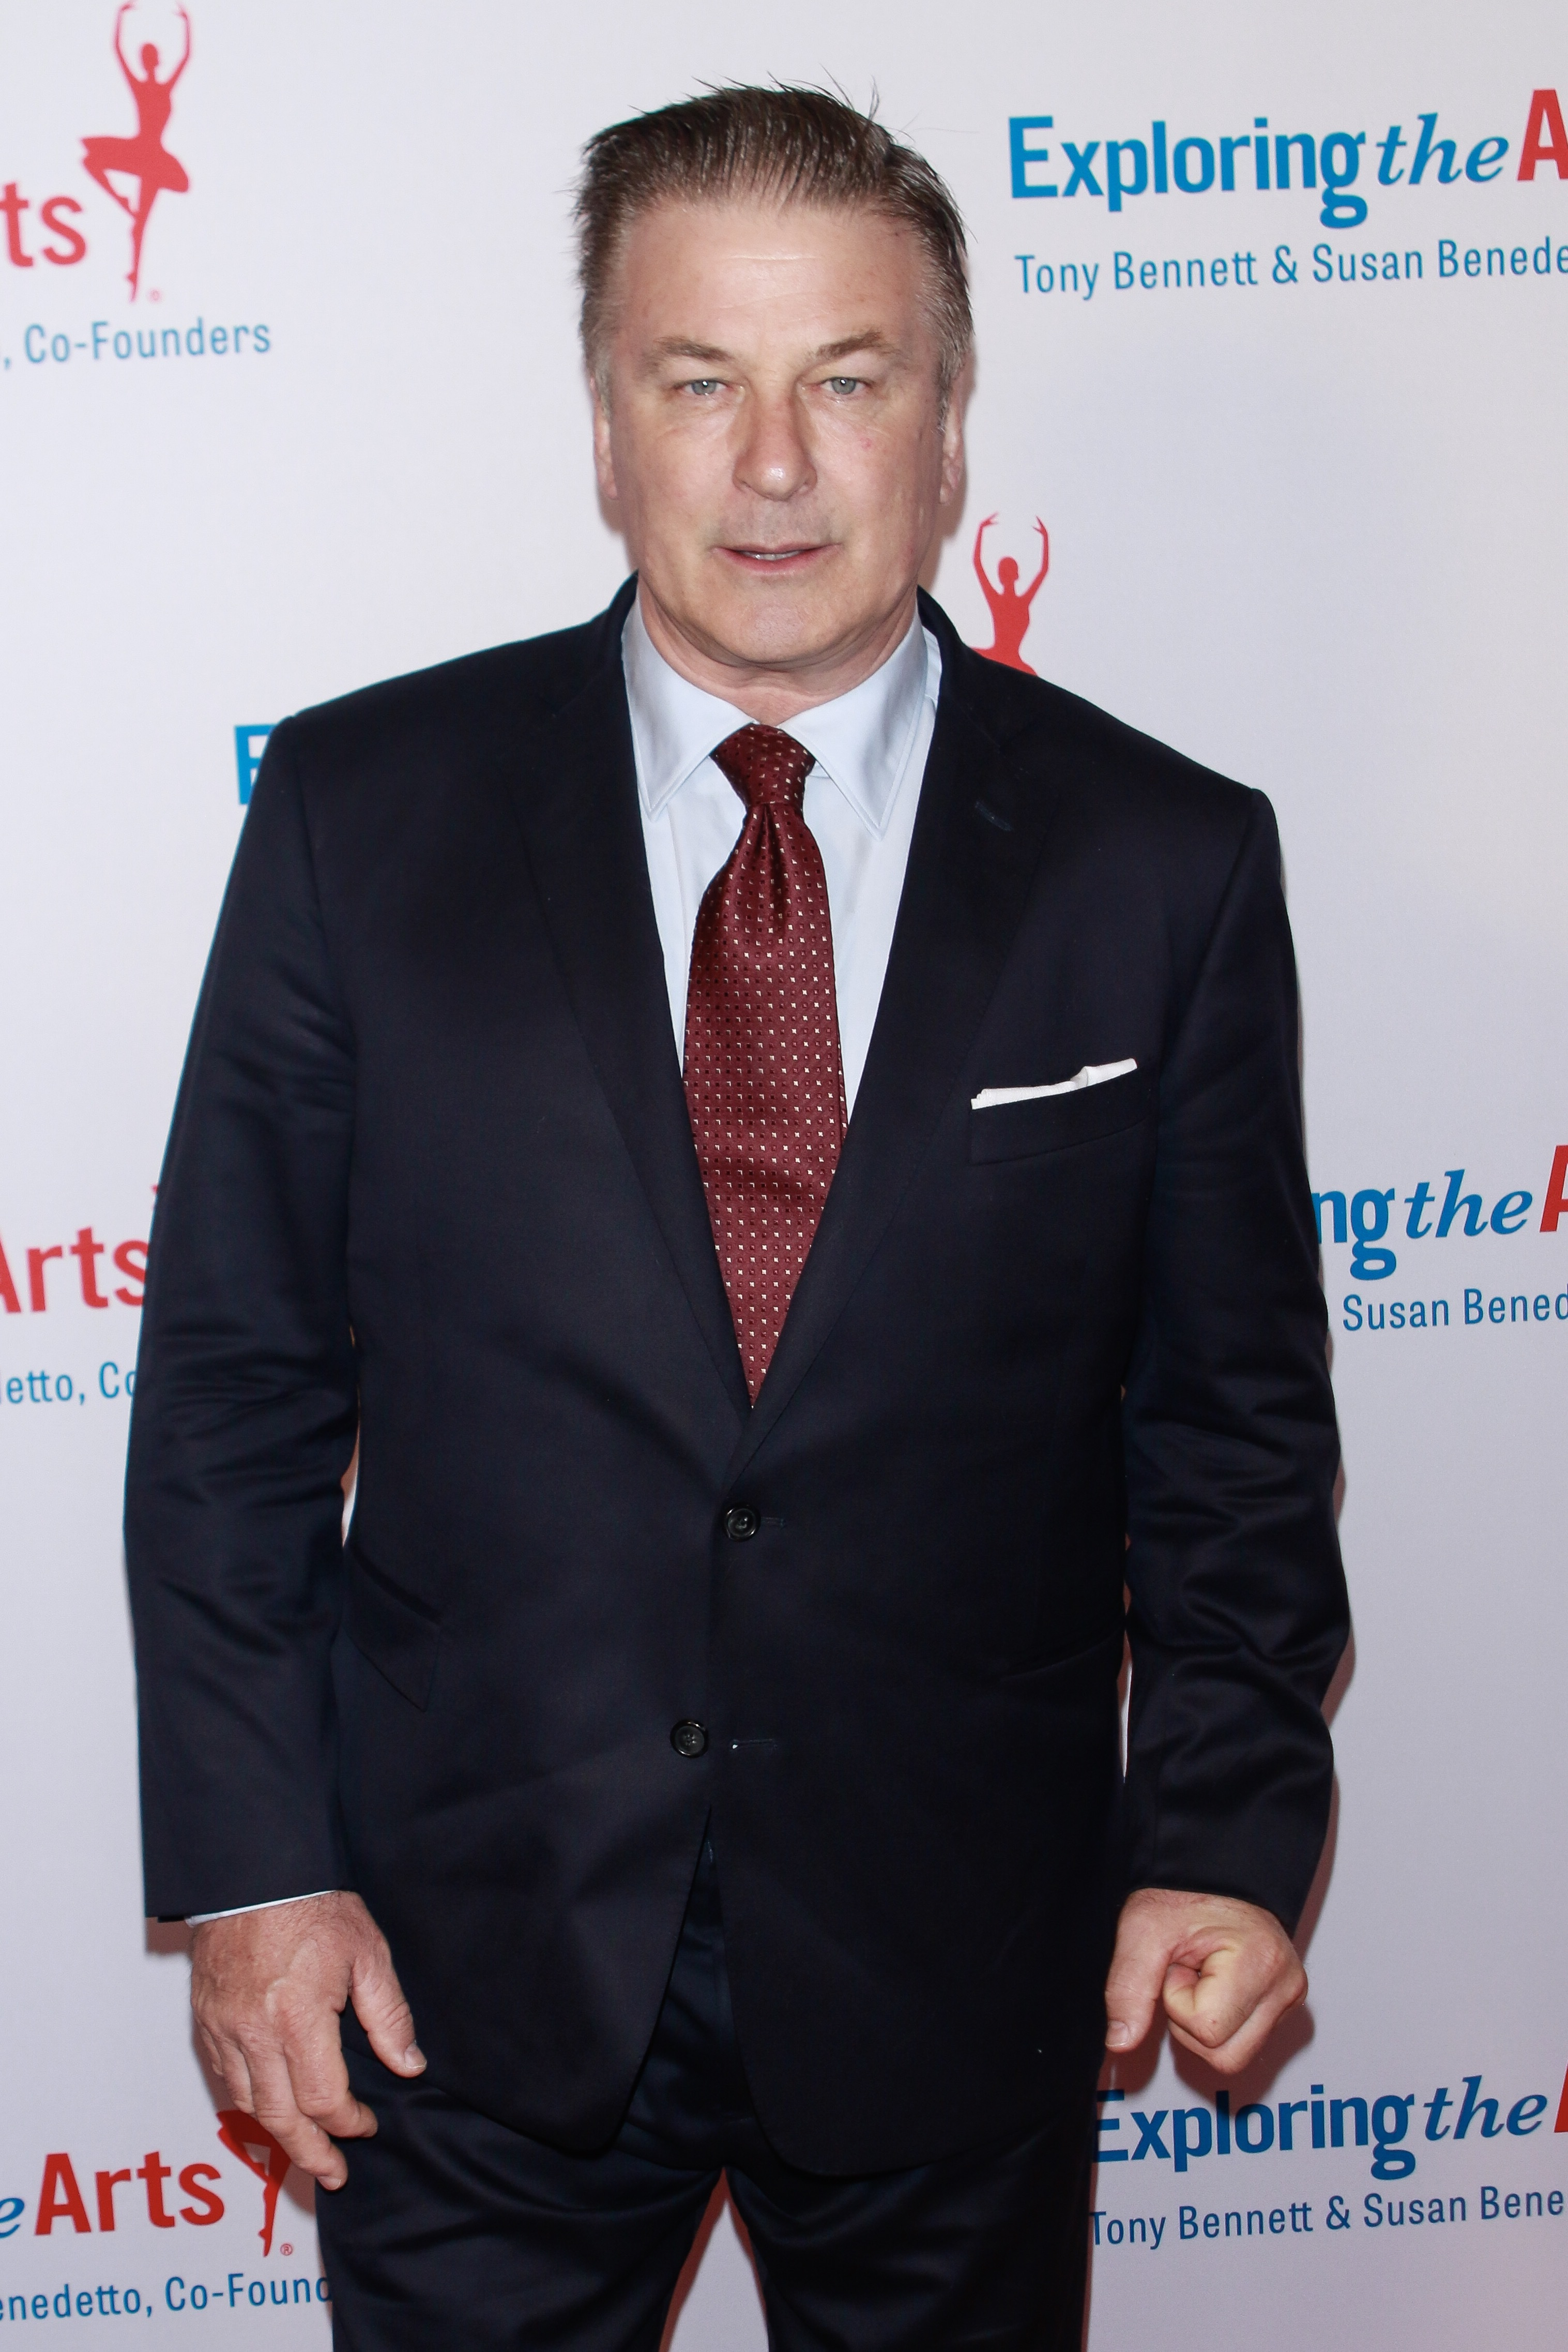 Alec Baldwin attends the Exploring the Arts 20th Anniversary Gala in New York City on April 12, 2019.